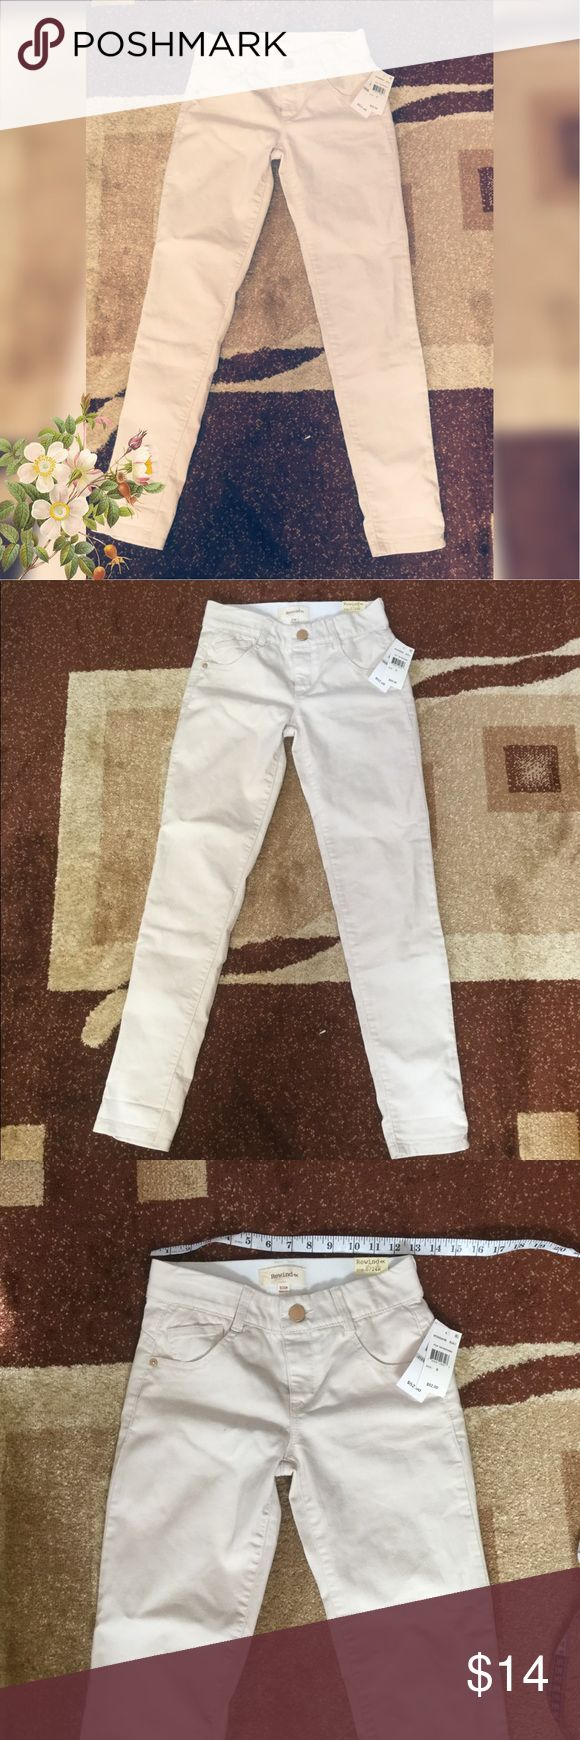 Rewind White Pants -New with tag and in great condition - size 0 -stretchable from the waist Rewind Jeans